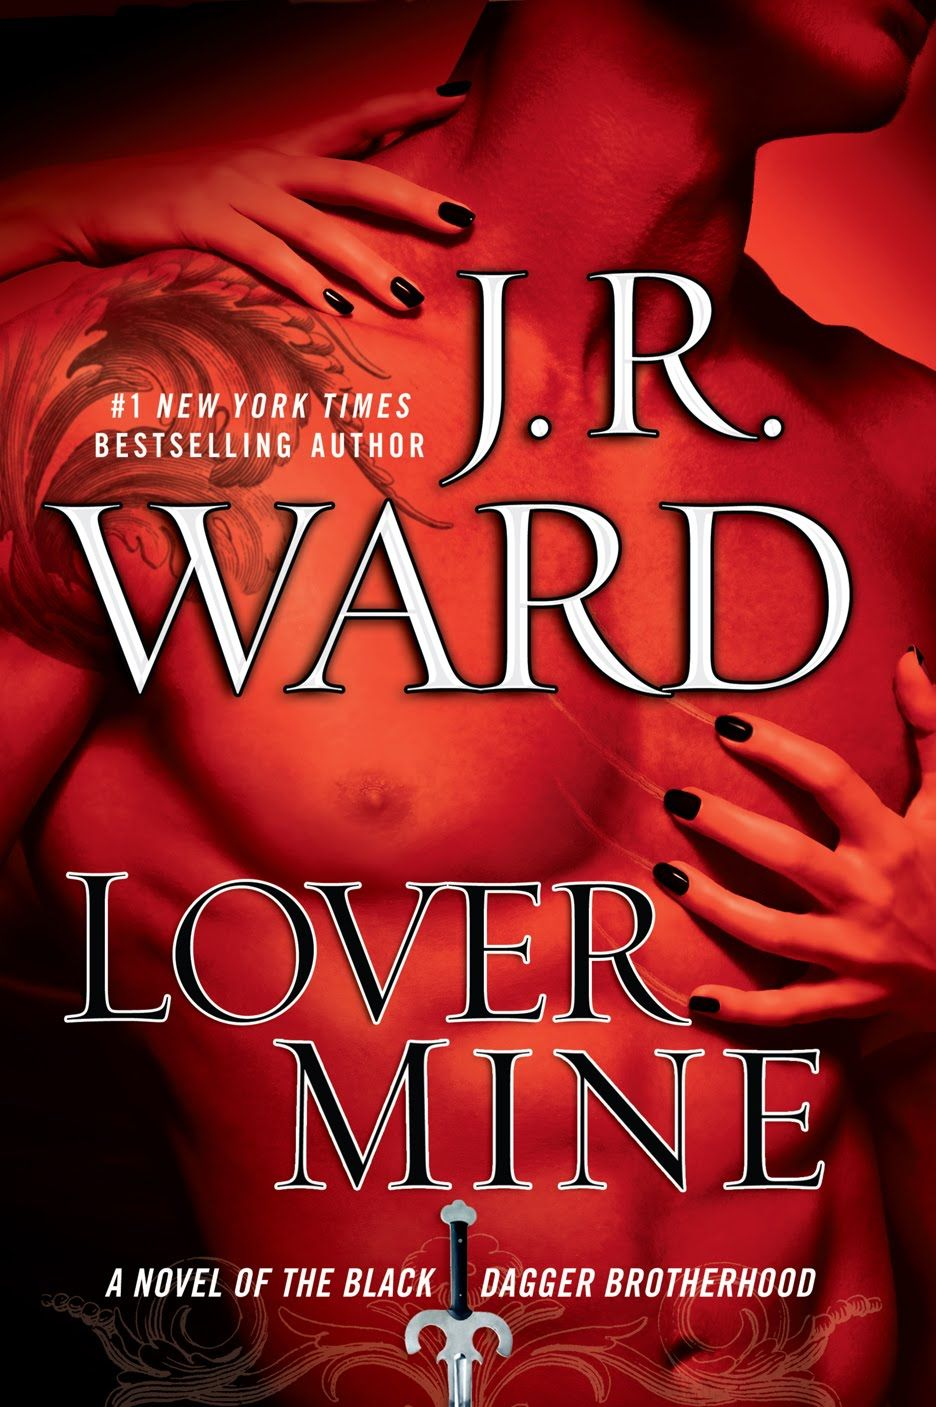 Find This Pin And More On I Love The Smell Of Books Lover Mine By Jr Ward Black  Dagger Brotherhood